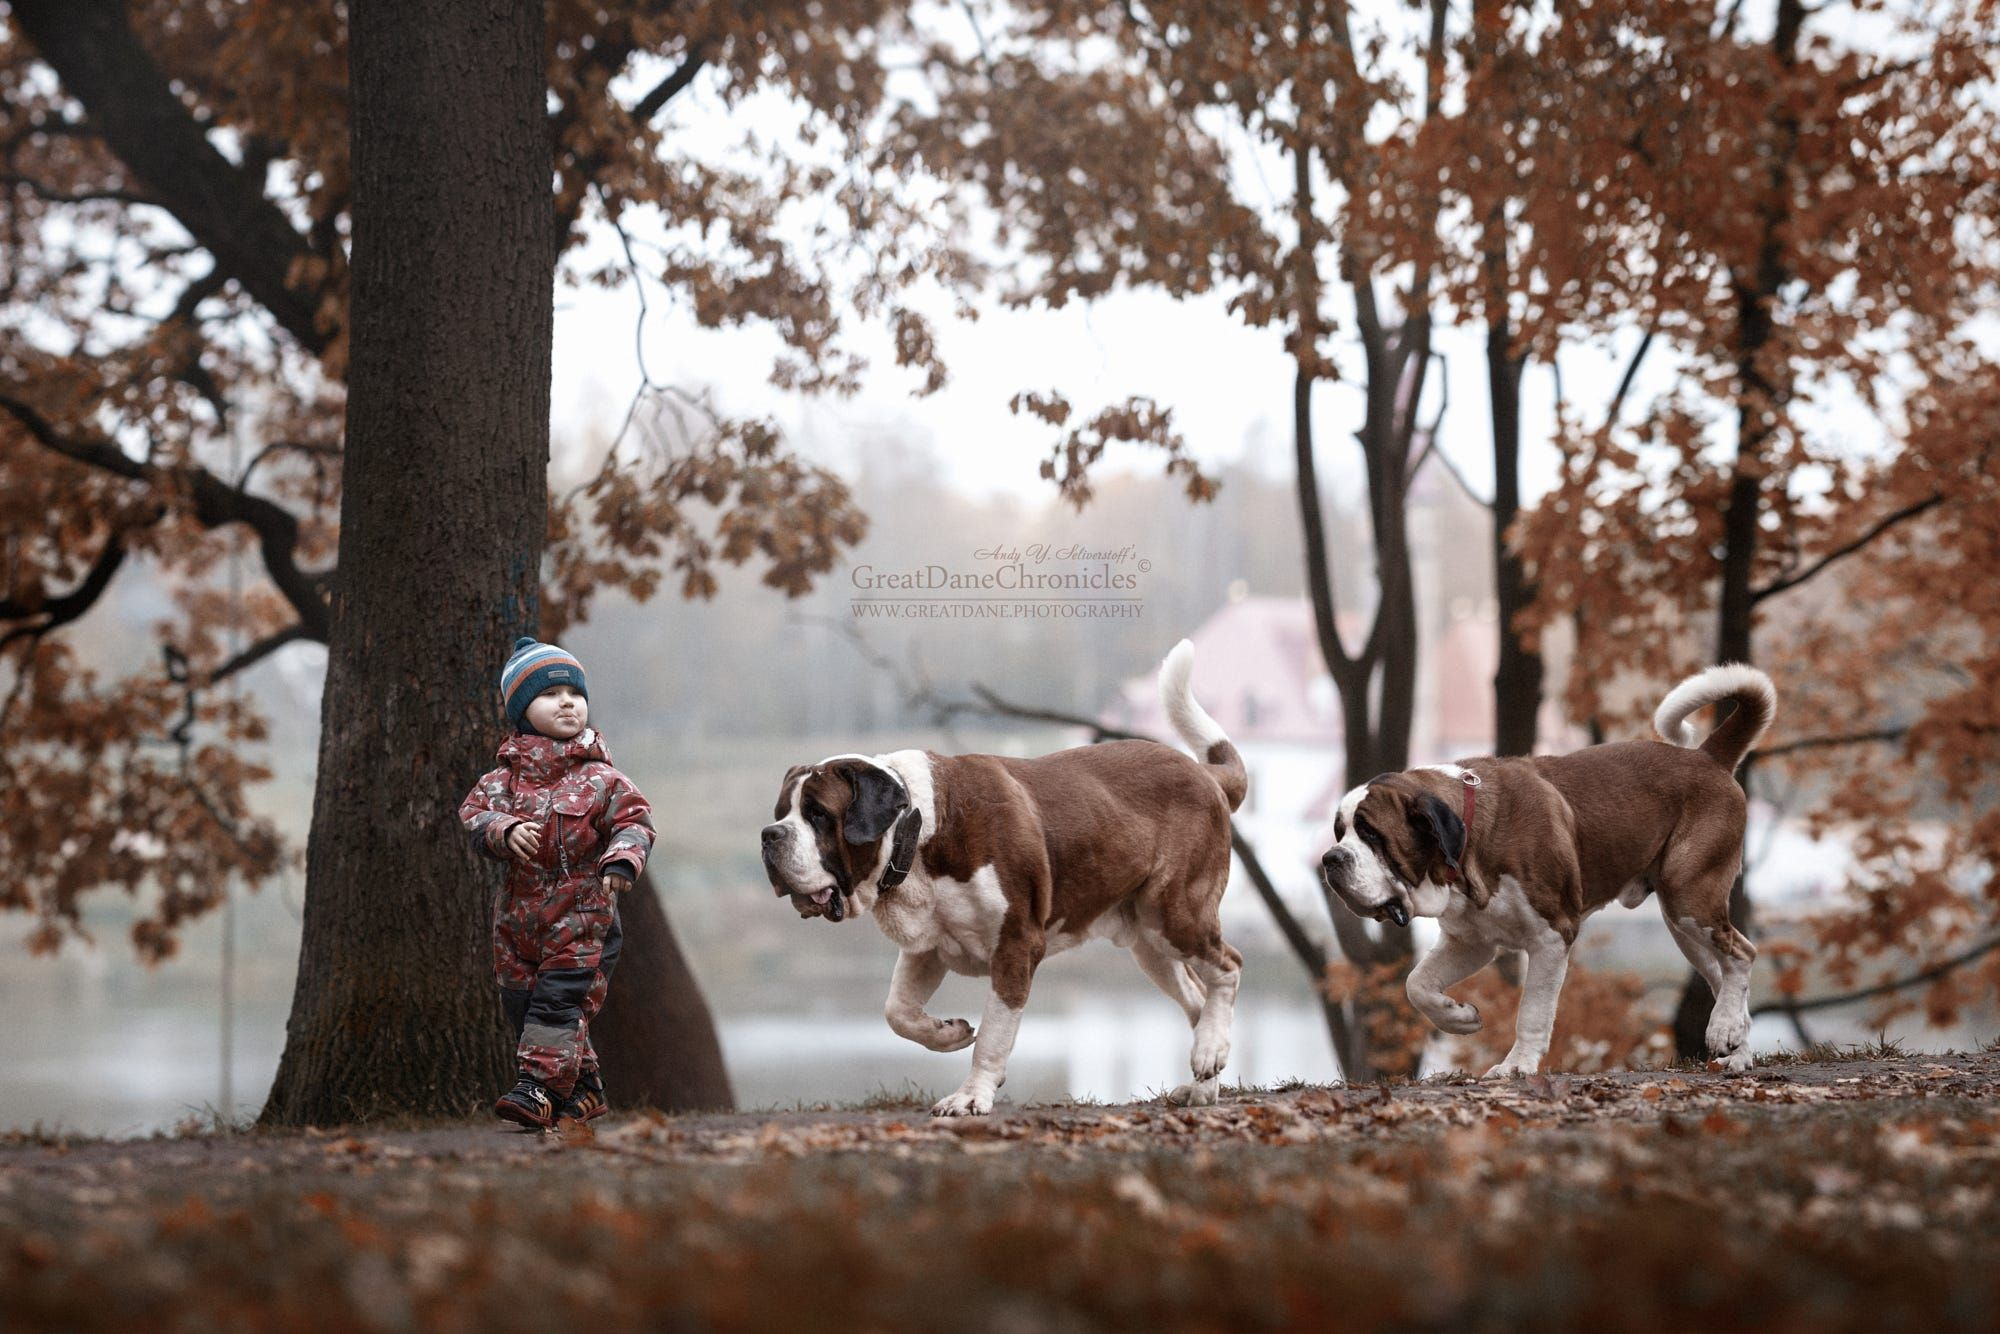 All Together We Follow Me By Andy Seliverstoff On Px - Tiny children and their huge dogs photographed in adorable portraits by andy seliverstoff